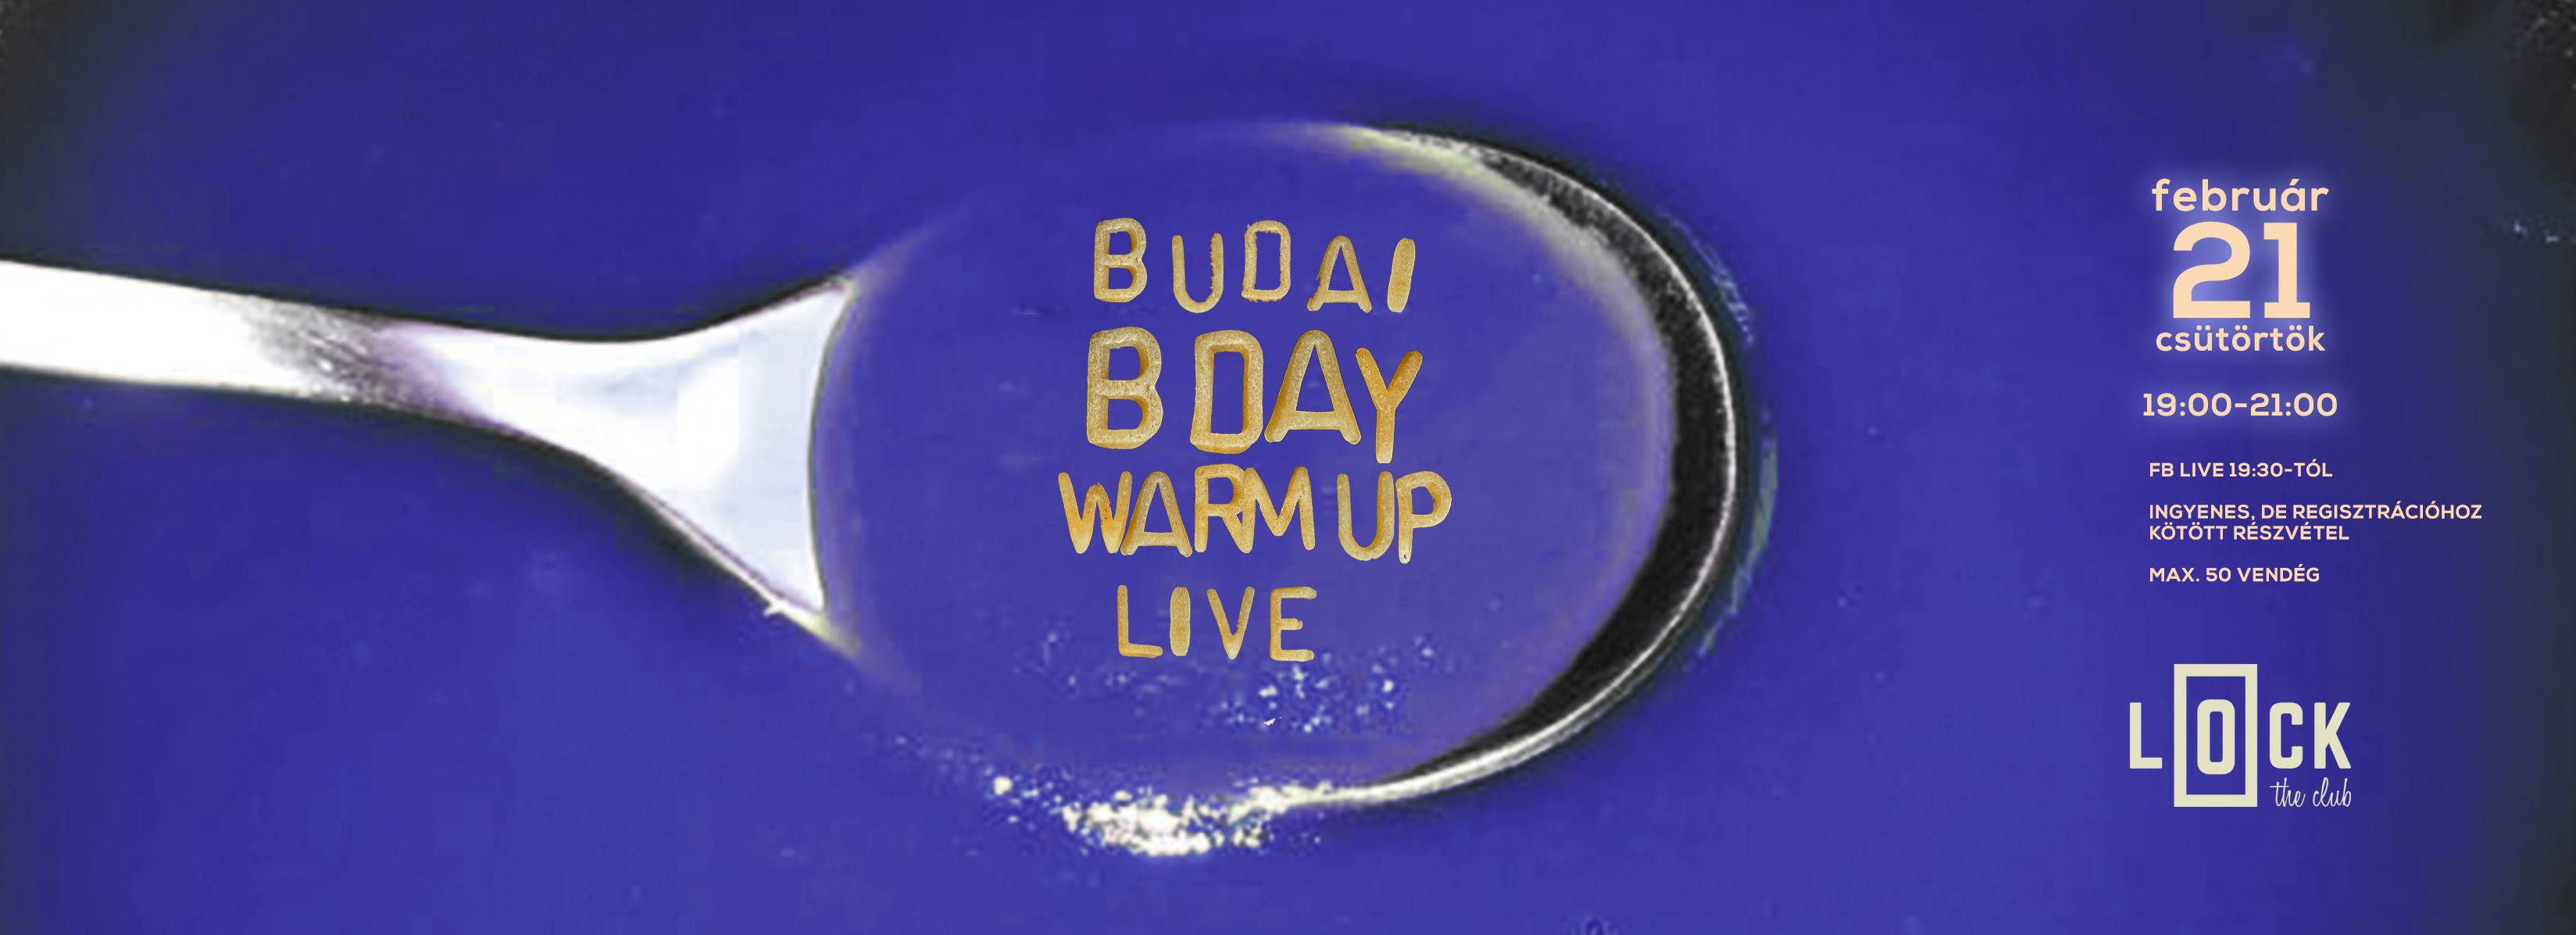 Warm up 2 Budai Bday + Live